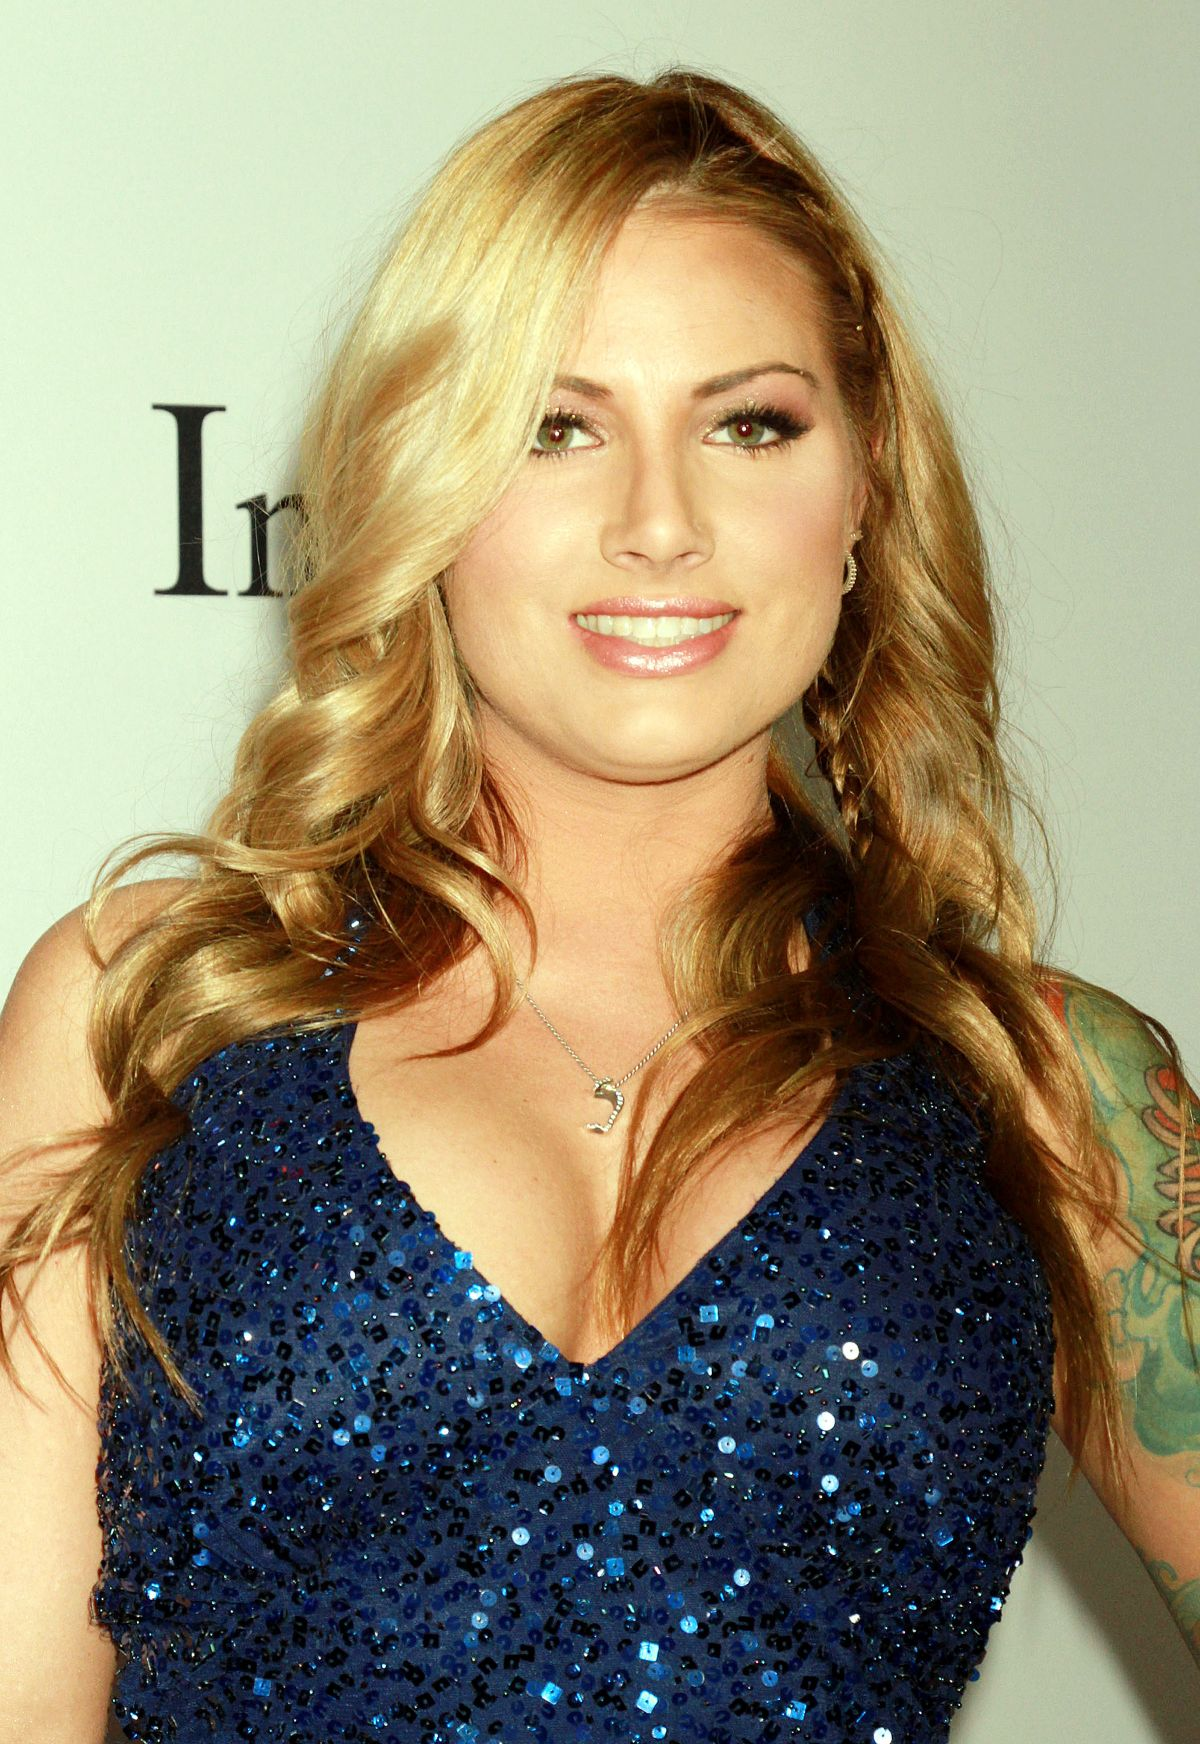 TEAGAN PRESLEY at 2015 AVN Awards in Las Vegas